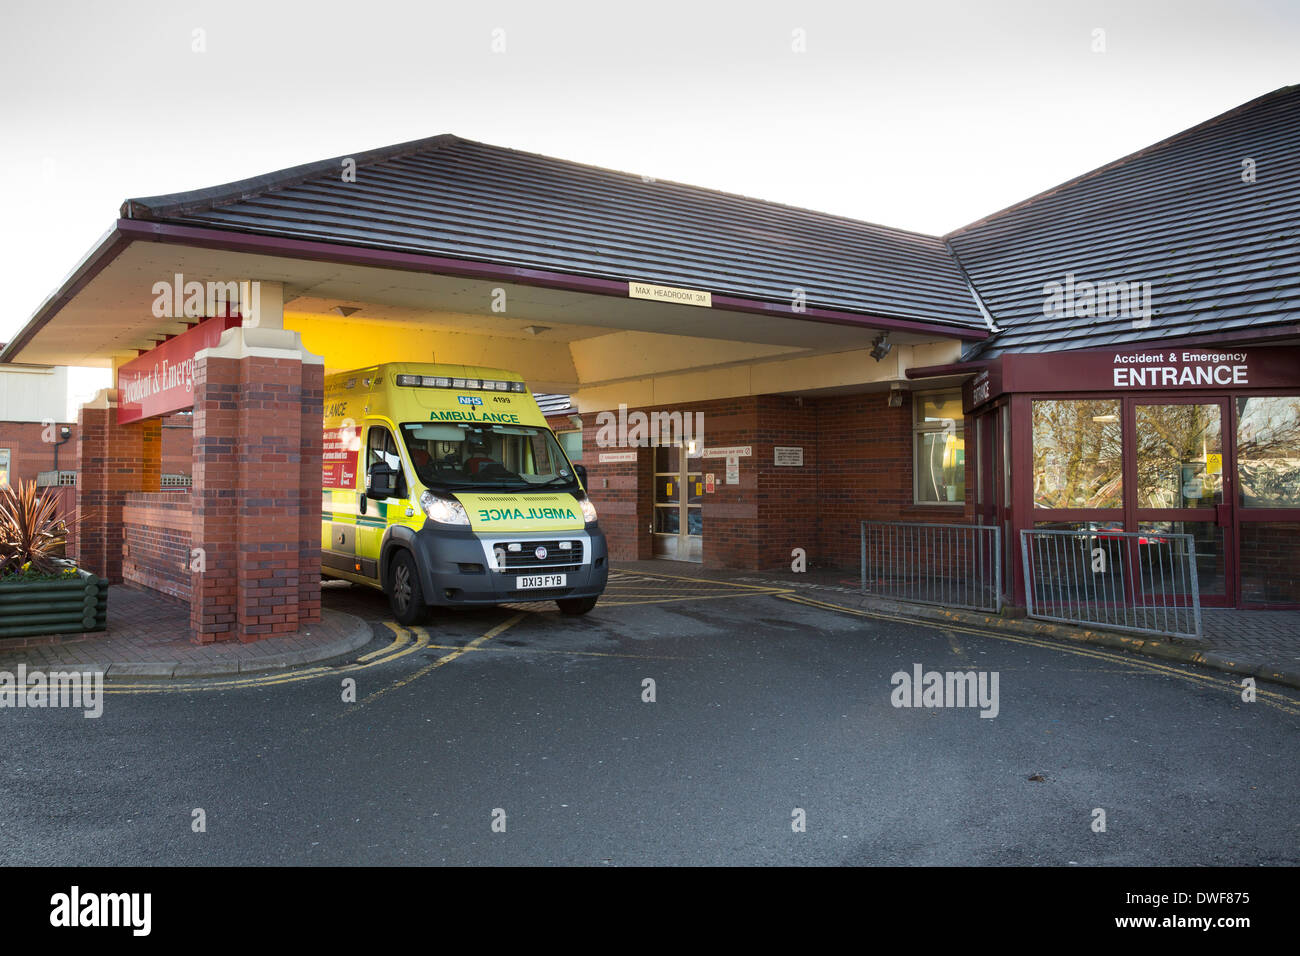 Heartlands Hospital, Birmingham. Pictured, the Accident and Emergency entrance to the hospital. - Stock Image